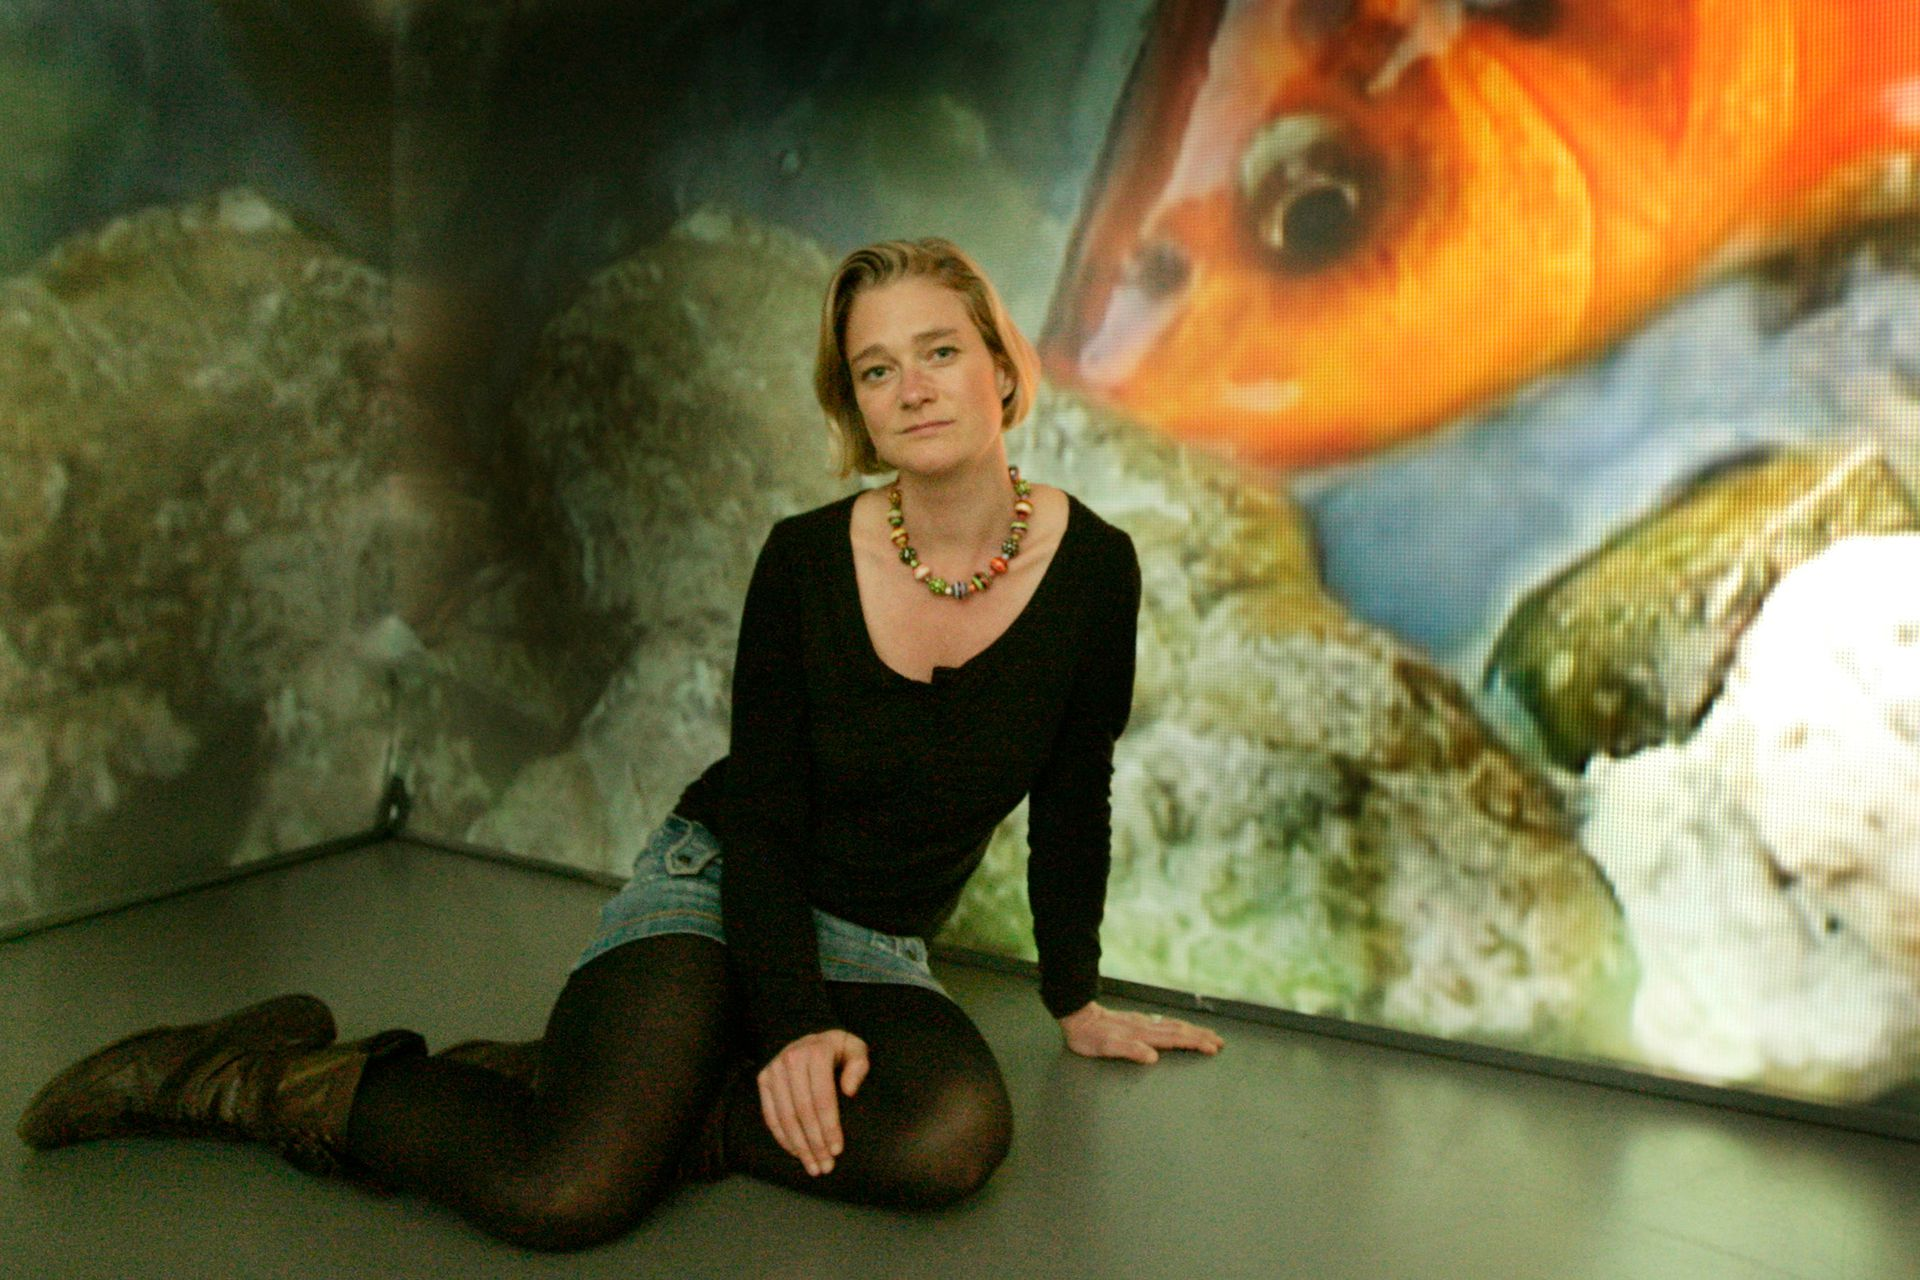 """BRUSSELS, BELGIUM - MAY 9: Delphine Boel, the alleged unrecognised daughter of King Albert of Belgium, attends an exhibition of her work called """"Concept"""" at the Pierre Berge Gallery on May 09, 2007 in Brussels, Belgium. (Photo by Mark Renders/Getty Images)"""